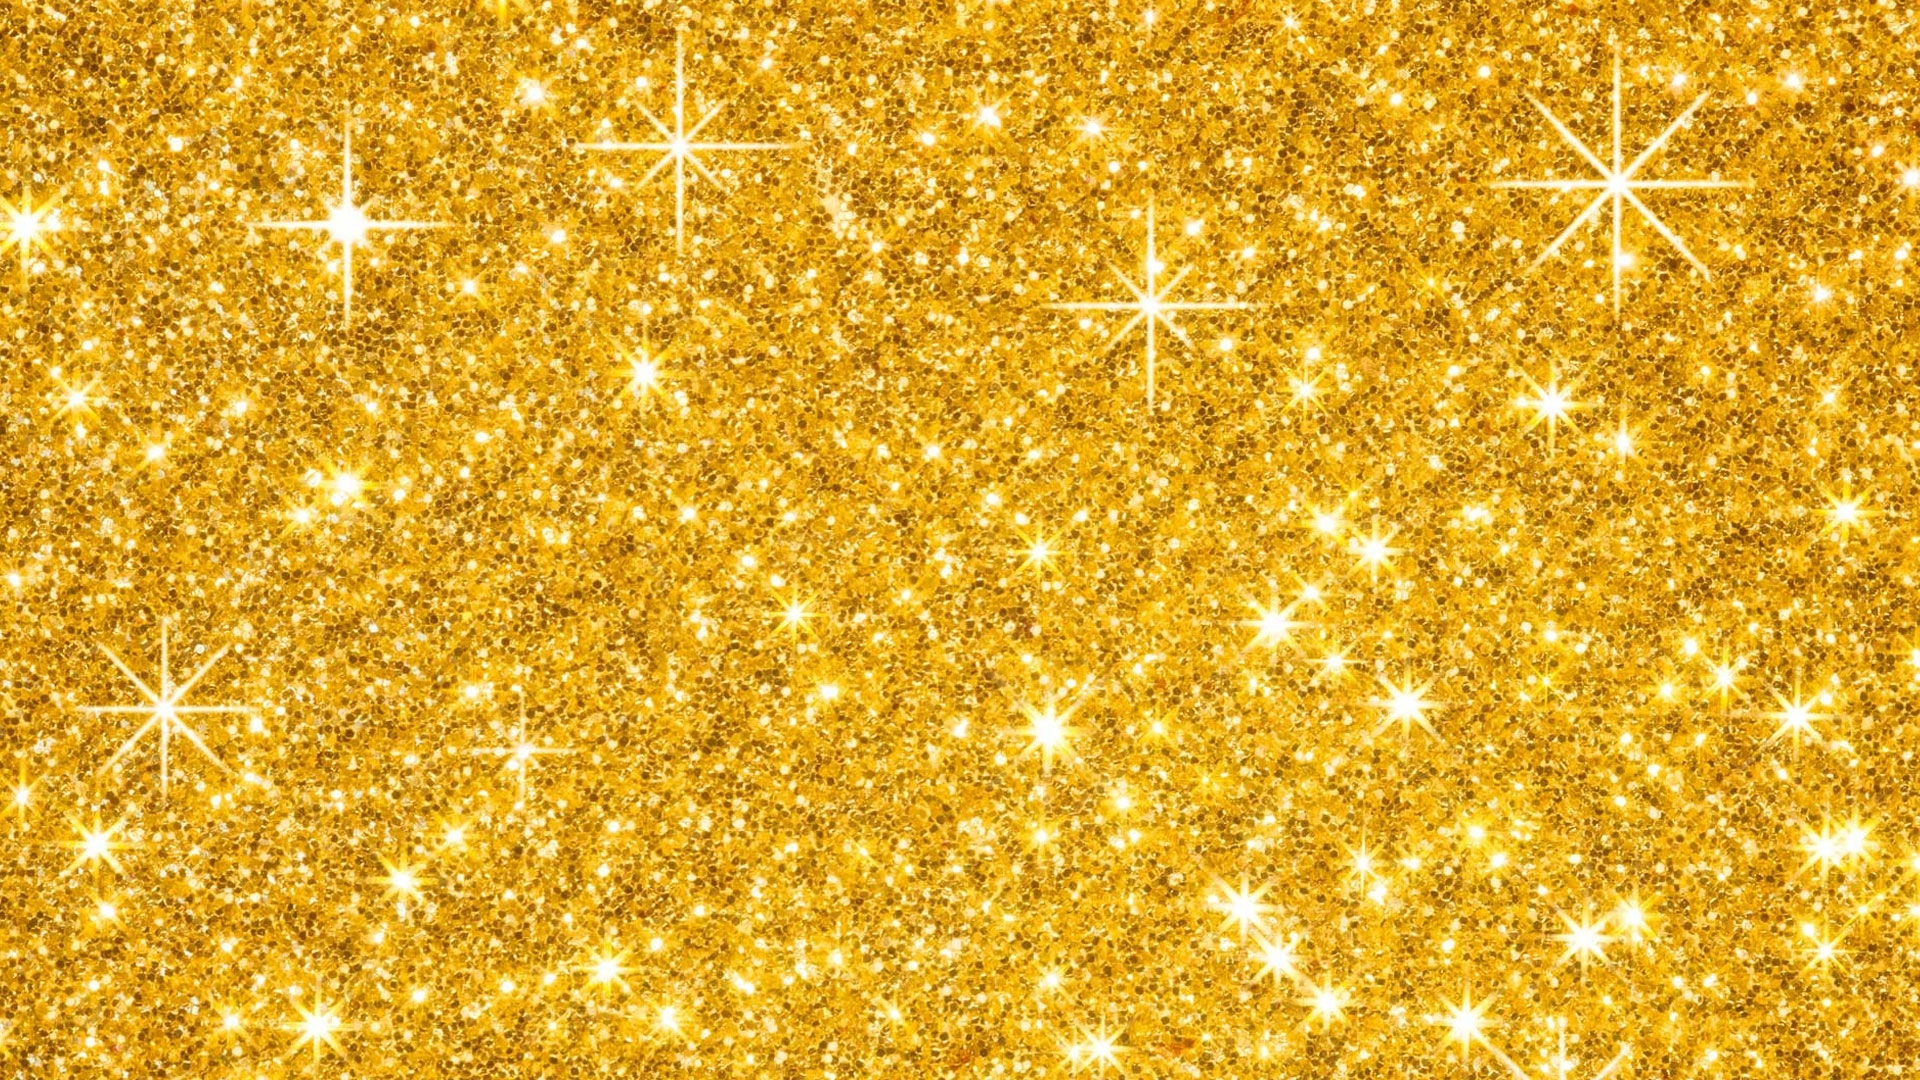 gold glitter background full hd wallpaper and background image